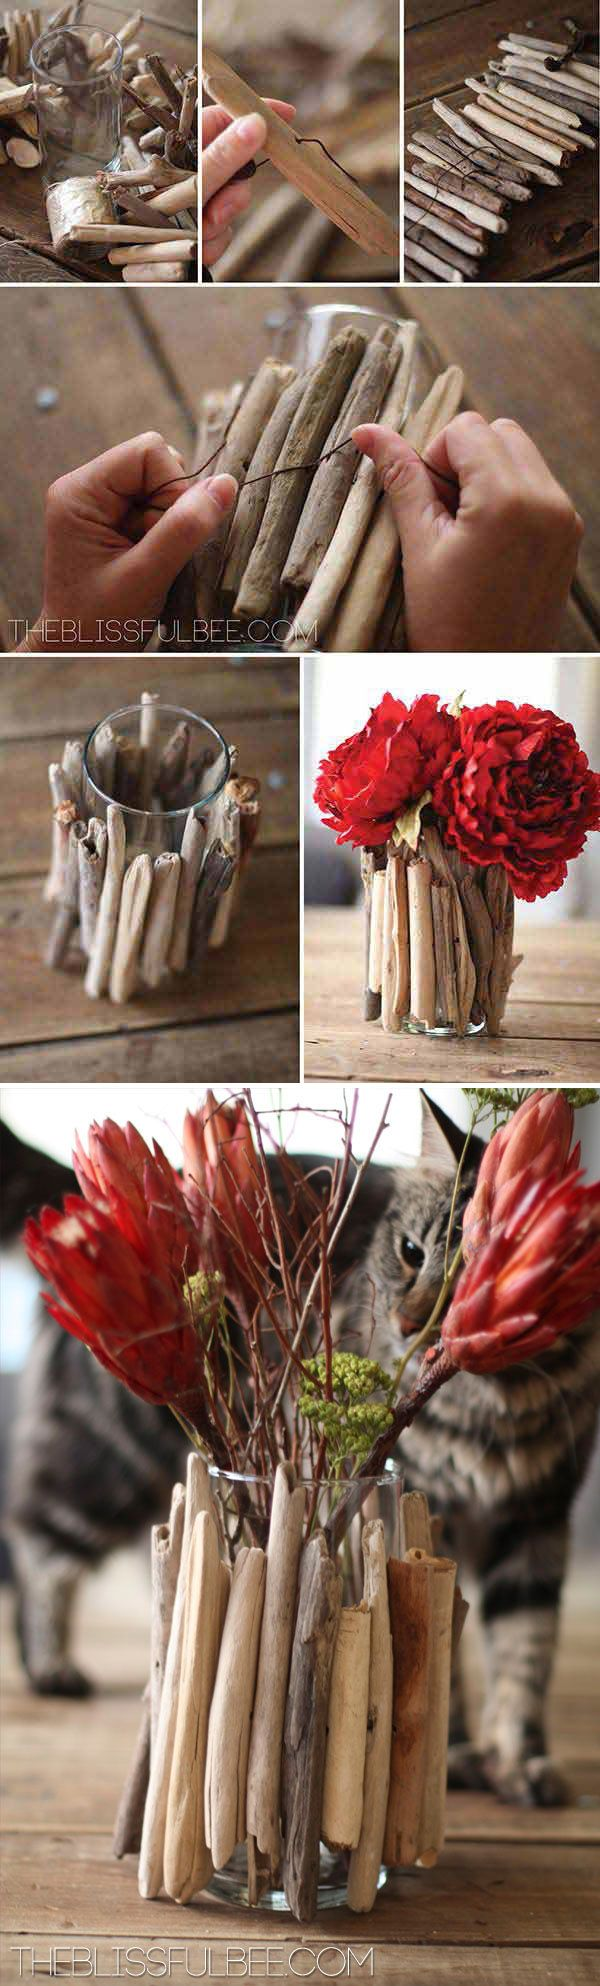 149 best DIY Wedding Ideas images on Pinterest   At home, Card ...